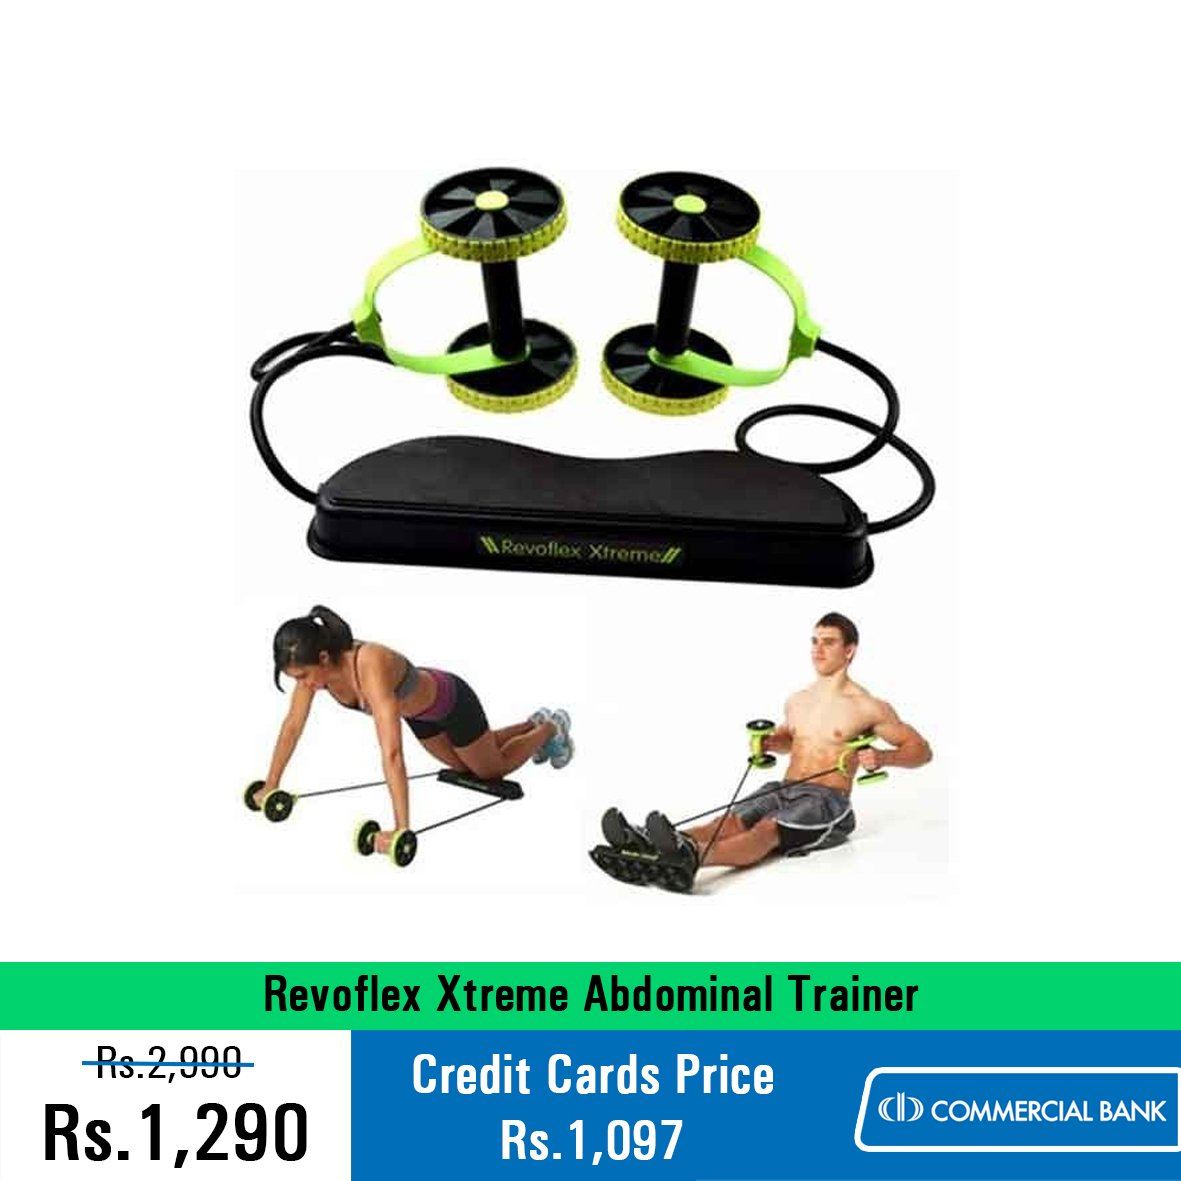 57% OFF! Revoflex Xtreme Abdominal Trainer for just Rs.1,290 ONLY!  Buy Now : https://t.co/3k0P6X4DuC https://t.co/jOYTWsUX4q